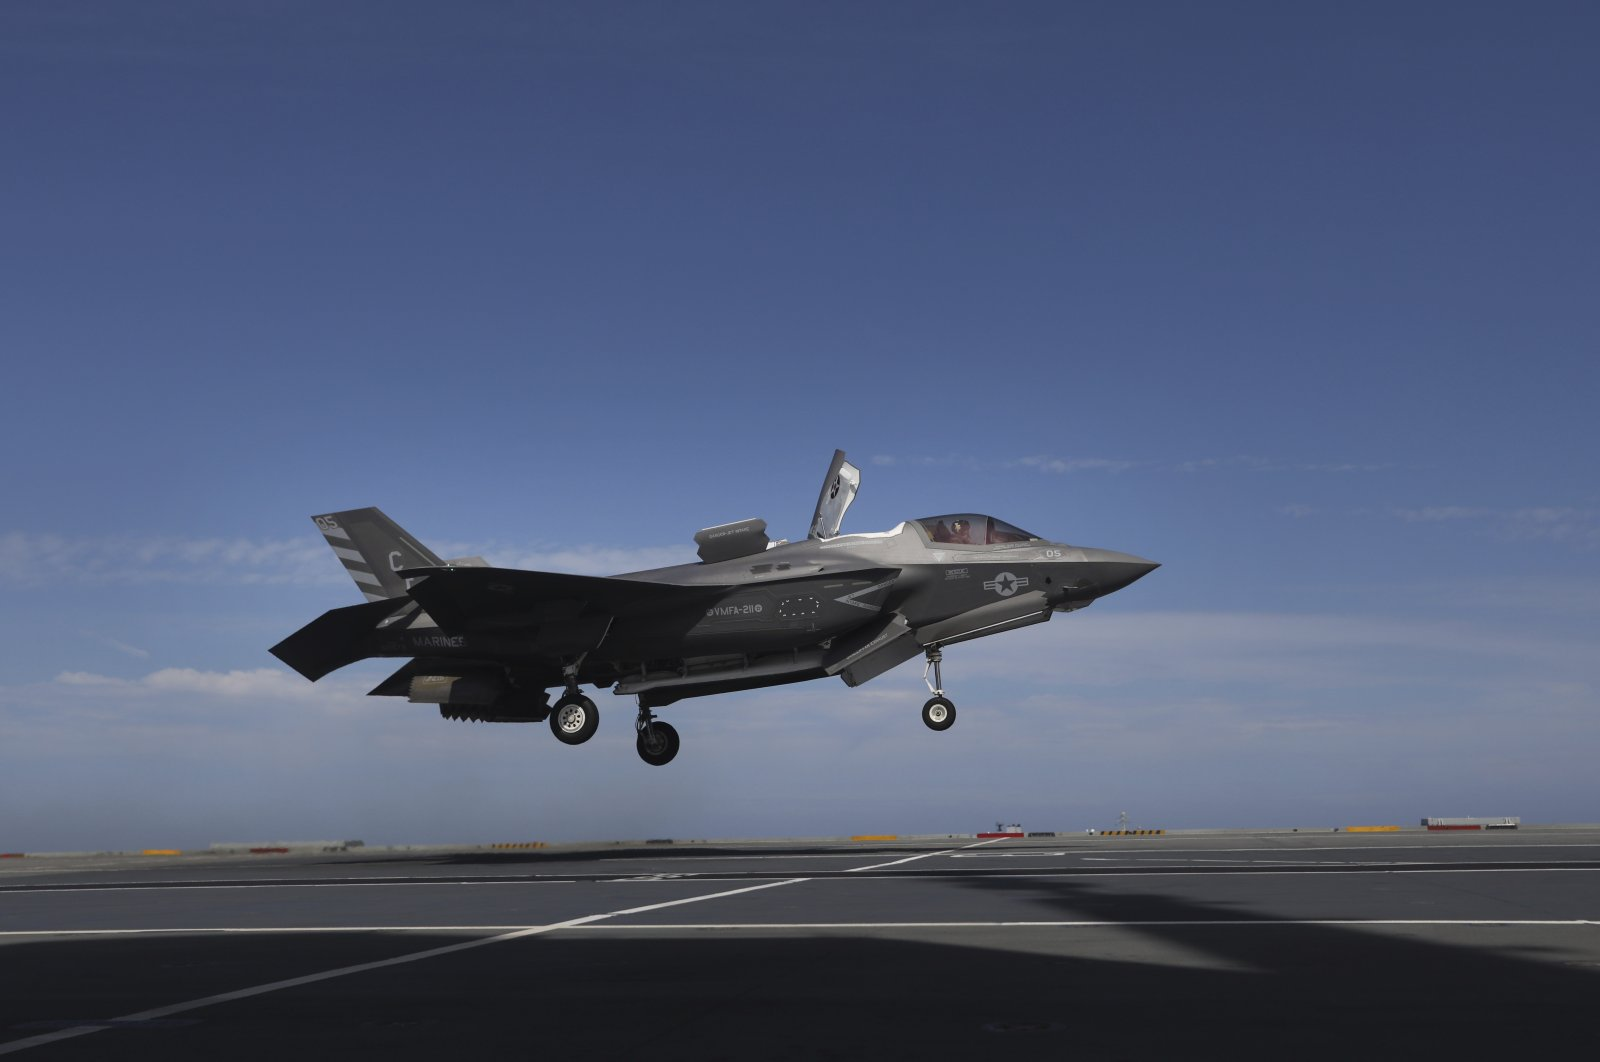 A pilot maneuvers an F-35 jet as military personnel participate in the NATO Steadfast Defender 2021 exercise on the aircraft carrier HMS Queen Elizabeth off the coast of Portugal, May 27, 2021. (AP Photo)